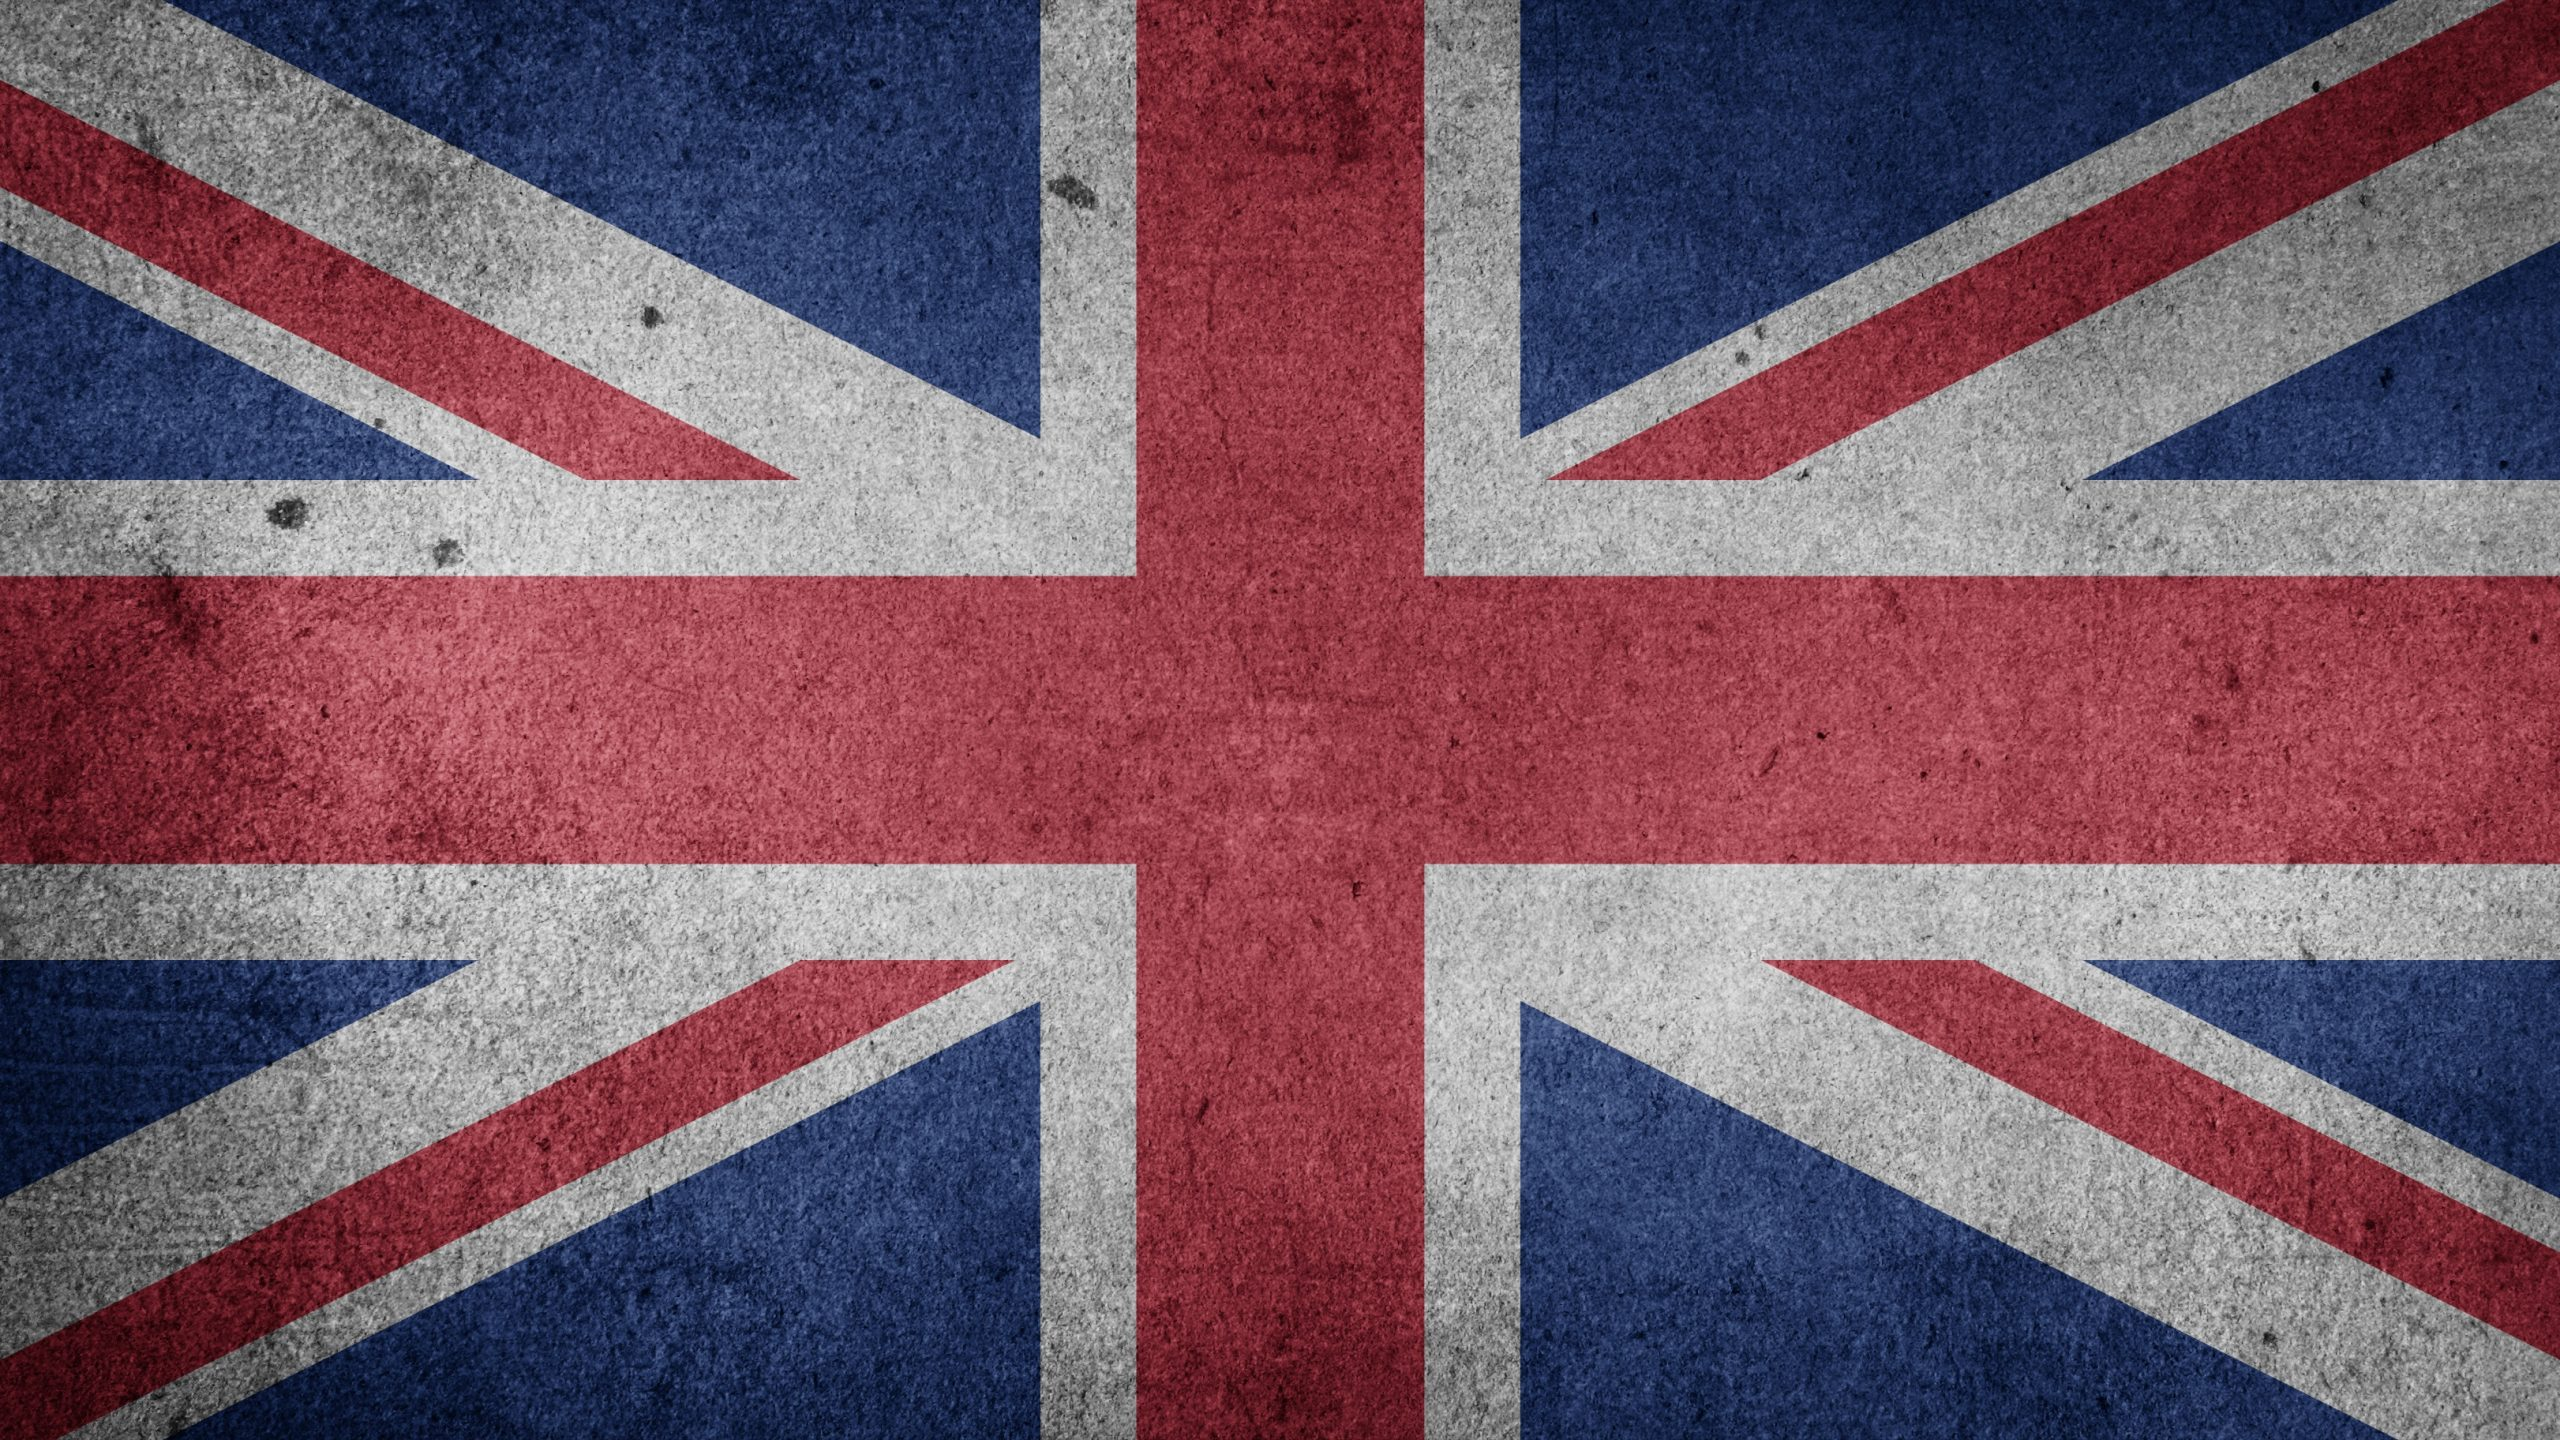 Wallpaper Iphone X Full Hd Flag Of The United Kingdom Grunge Hd Wallpaper